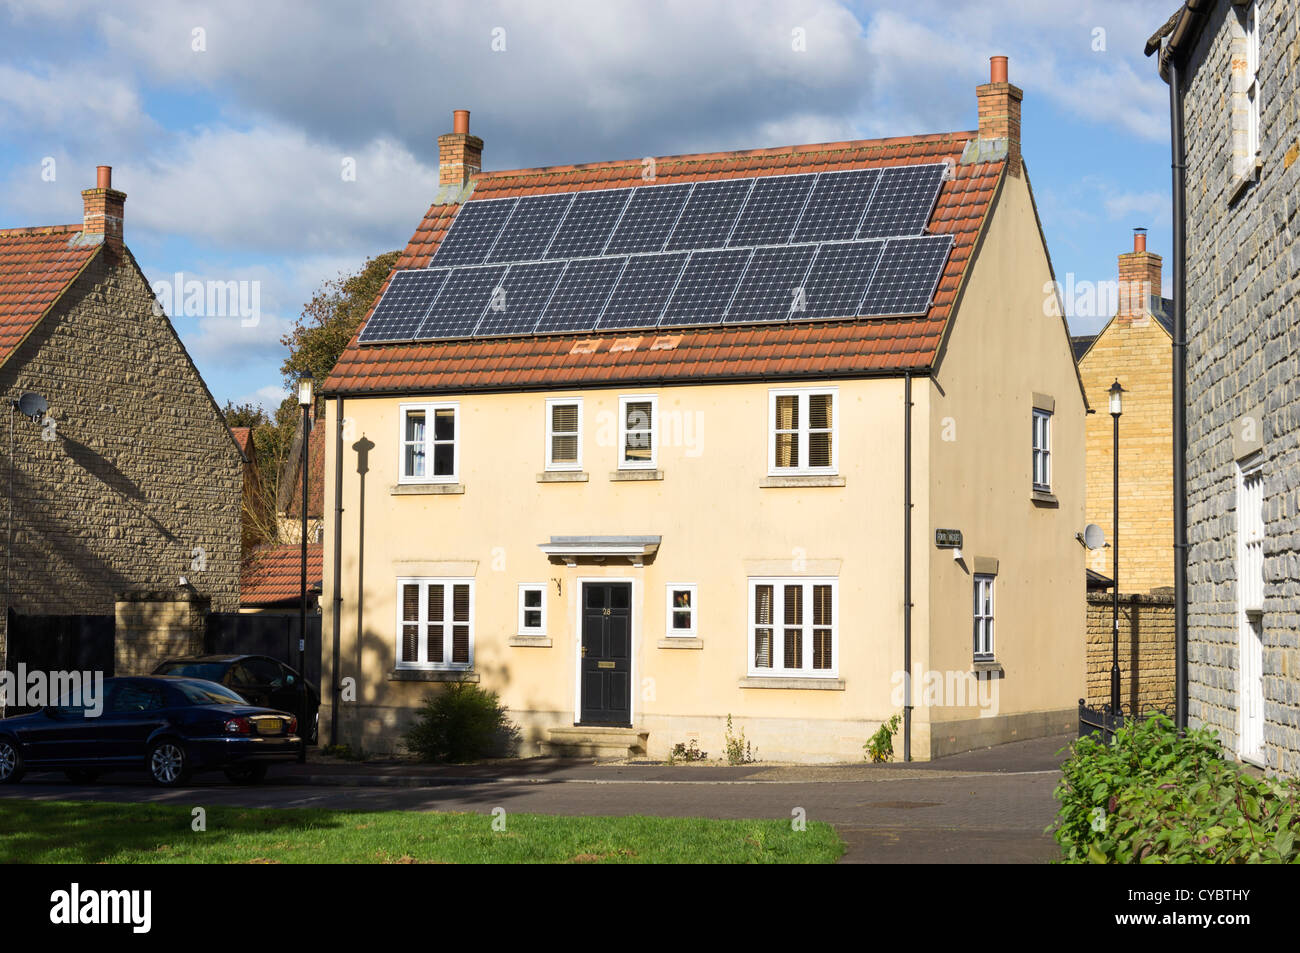 Solar panels - on a residential house, England, UK - Stock Image